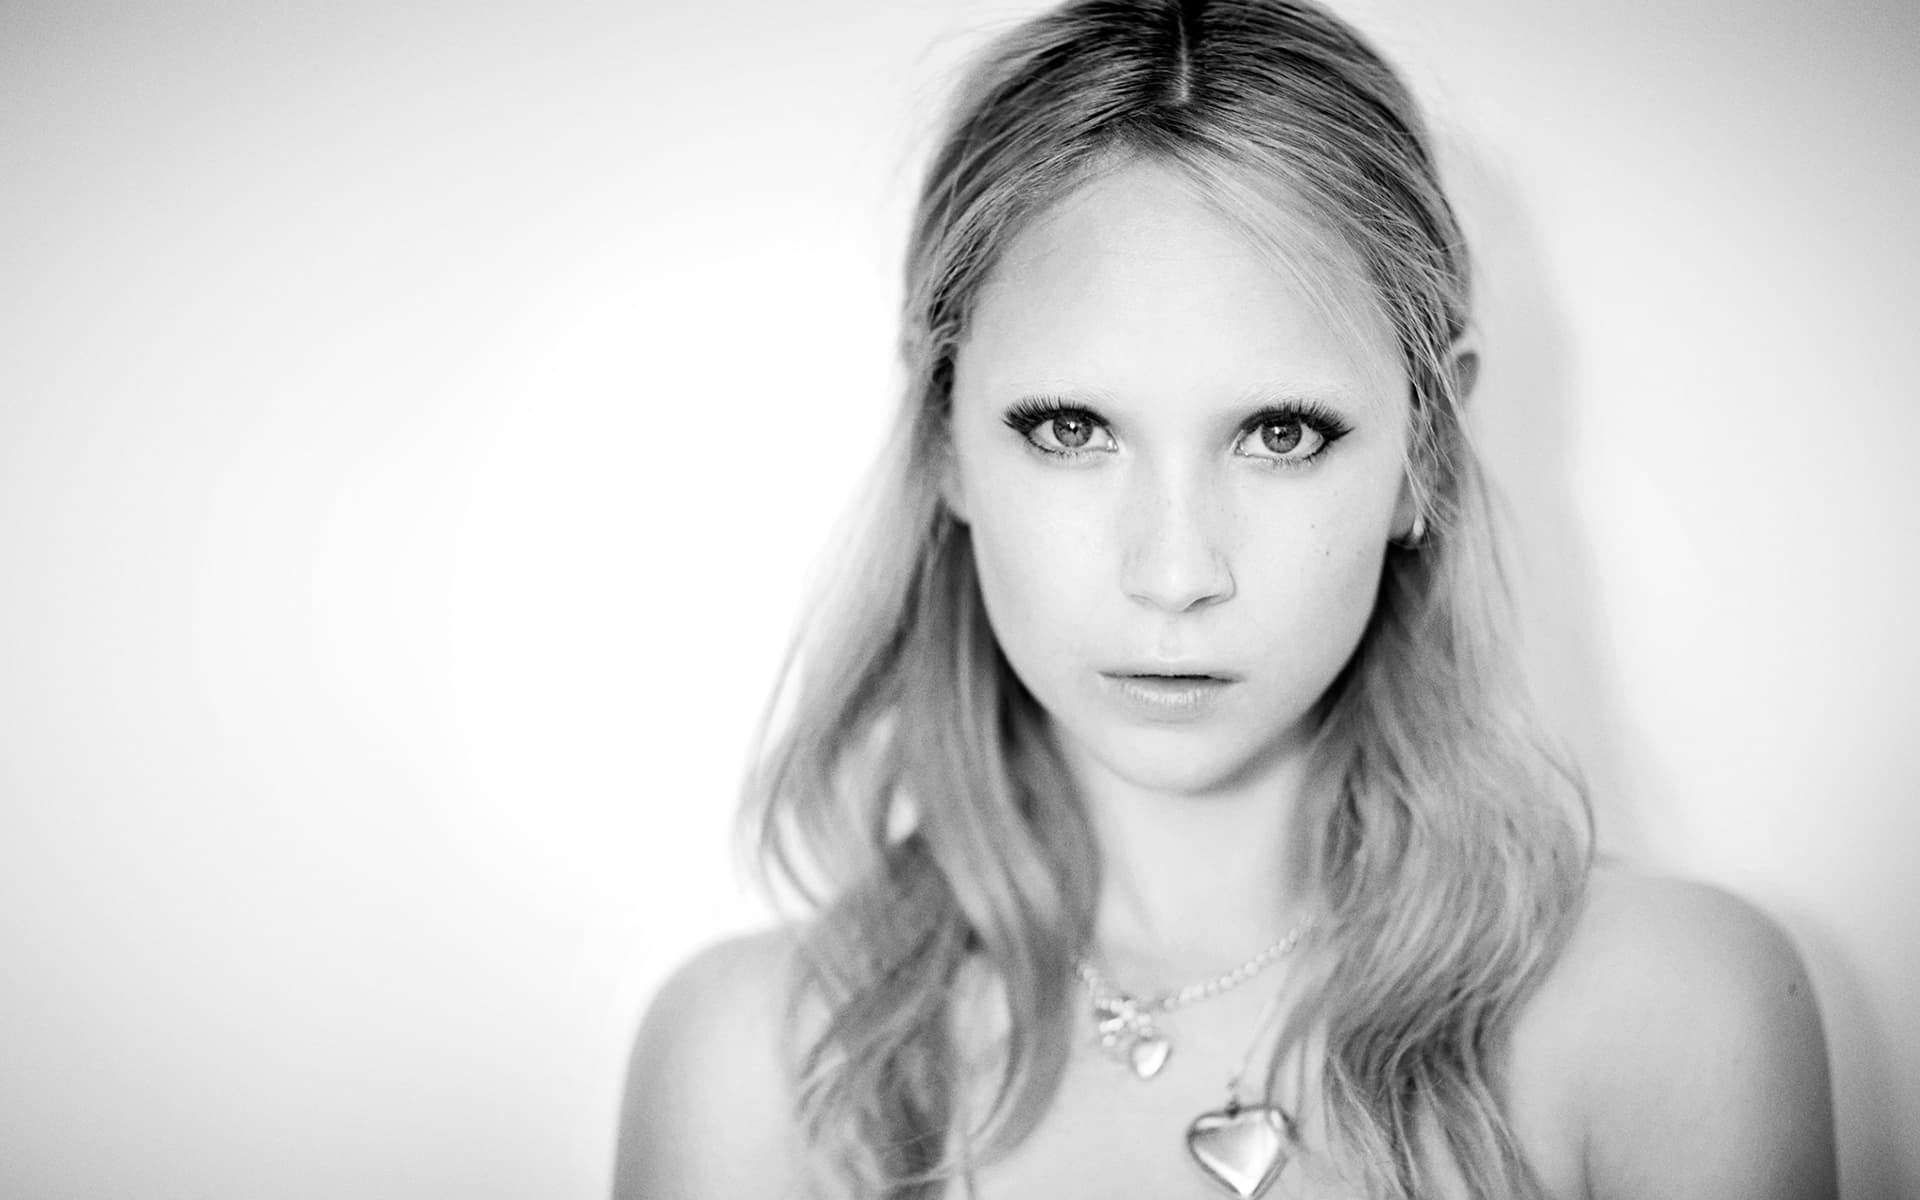 Juno Temple black and white wallpaper High Quality